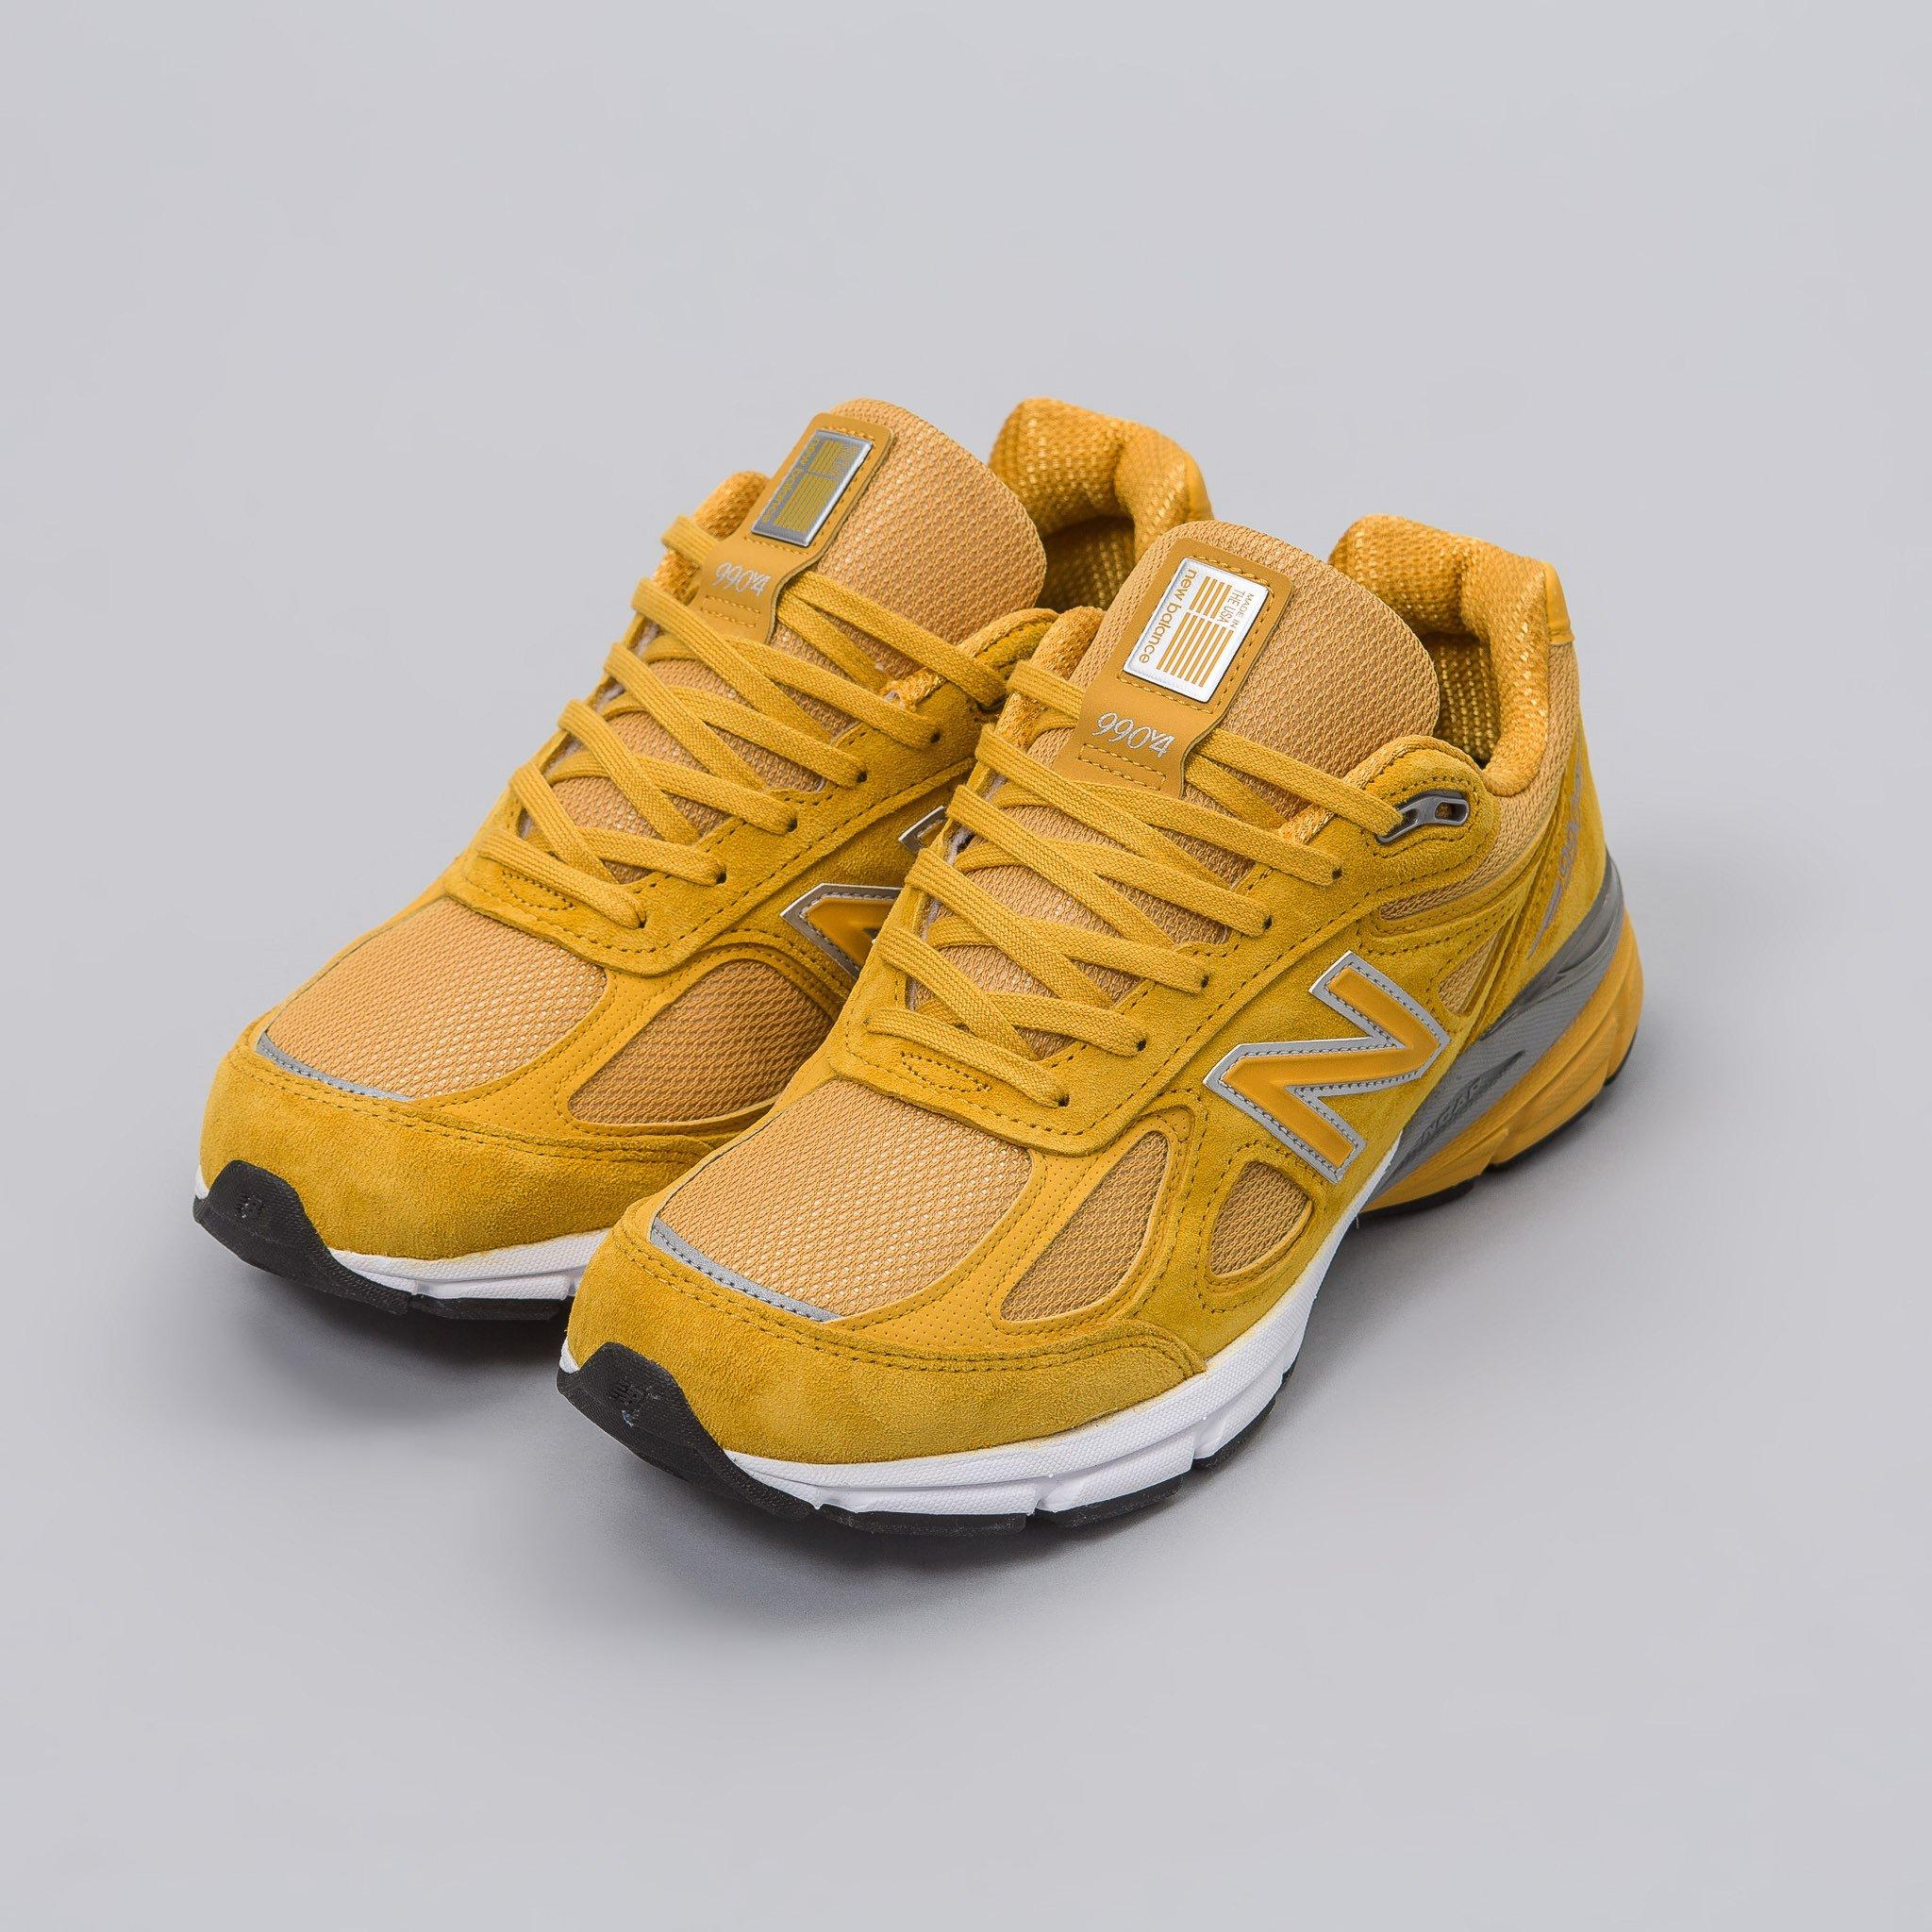 info for 4cc70 ac229 ... new zealand lyst new balance m990qk4 in yellow in yellow for men 526f0  2fa4f